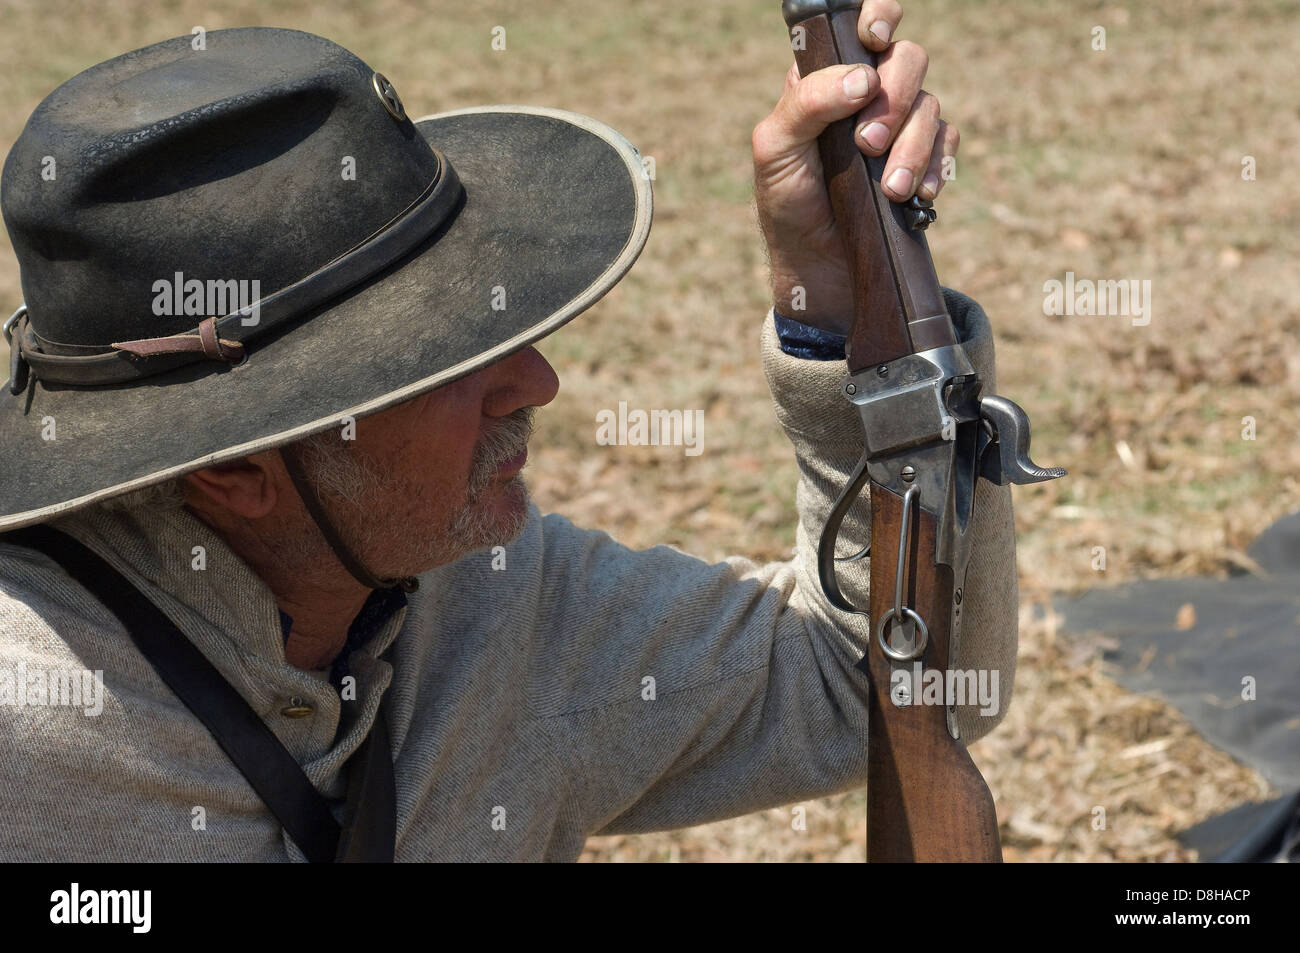 Confederate cavalry reenactor with a carbine, Shiloh National Military Park, Tennessee. Digital photograph - Stock Image